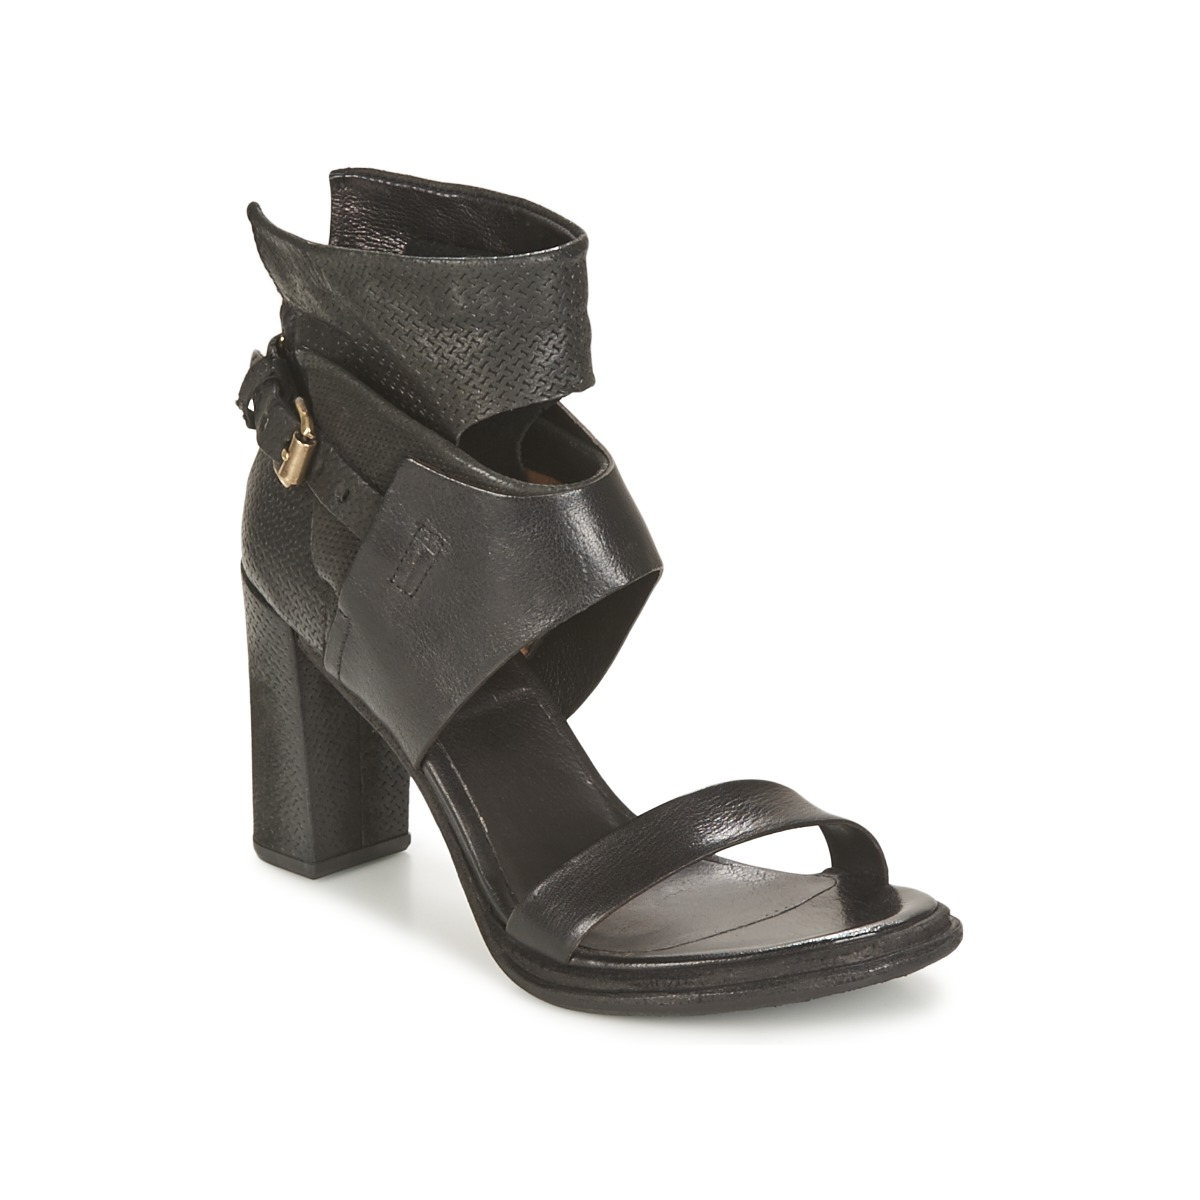 Sandals Airstep / A.S.98 IRON Black